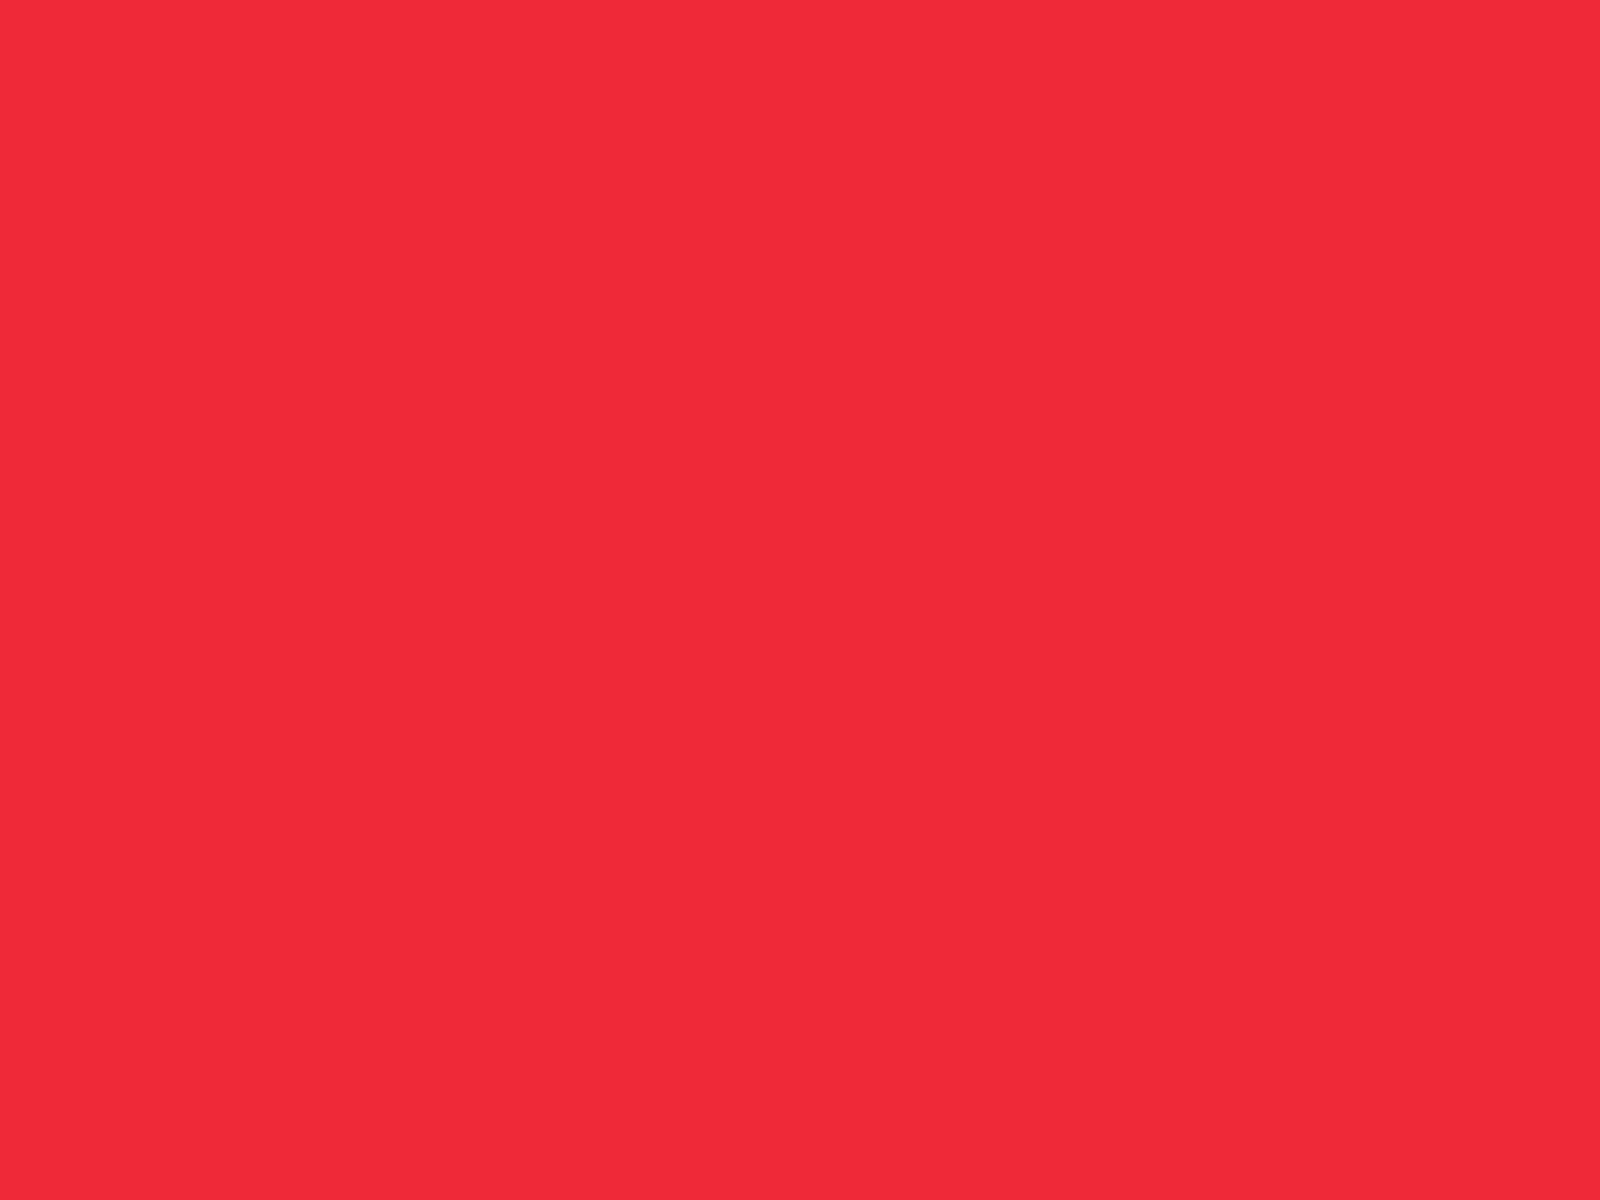 1600x1200 Red Pantone Solid Color Background